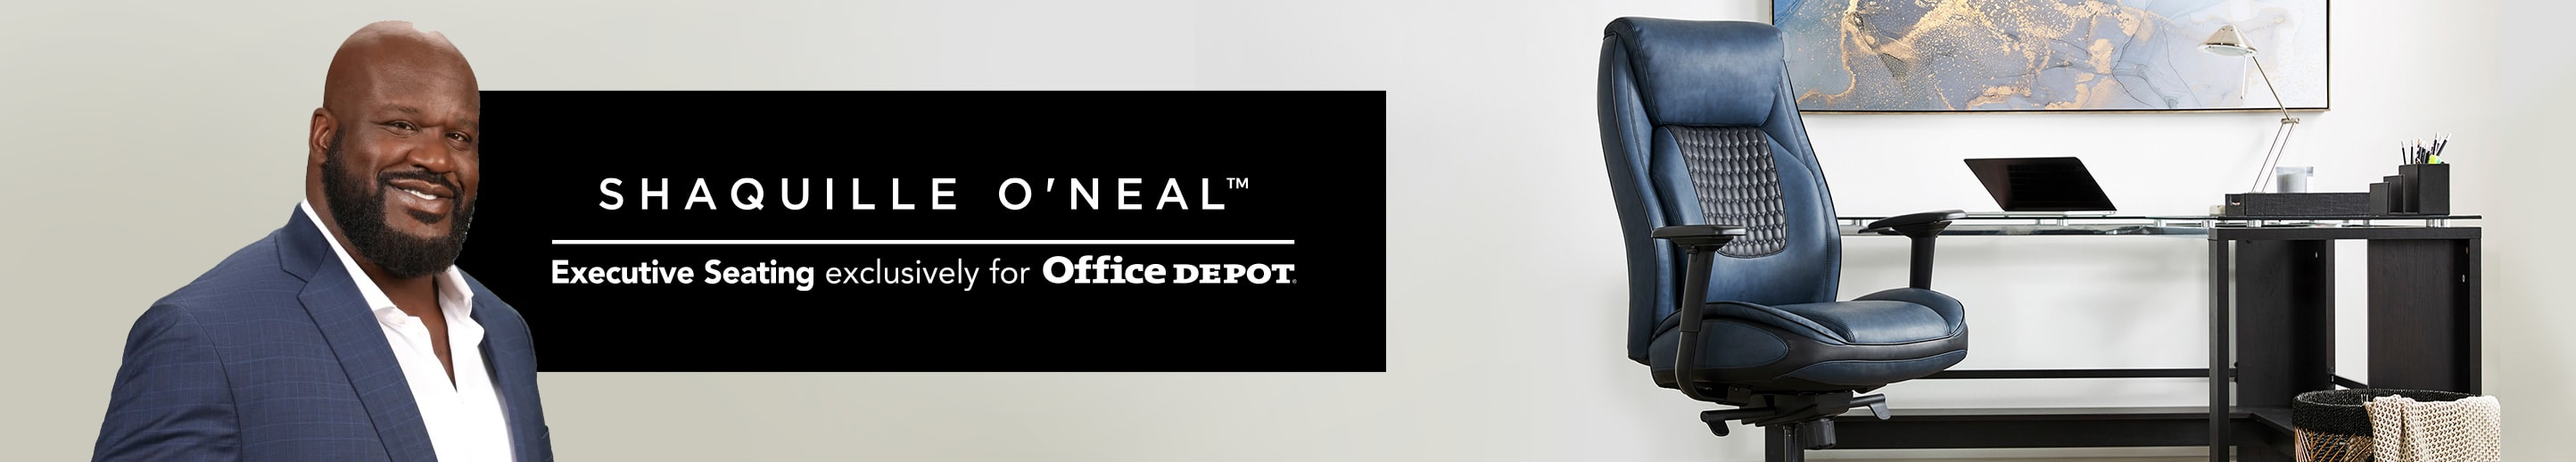 Shaquille O'Neal™ Executive seating exclusively for Office Depot